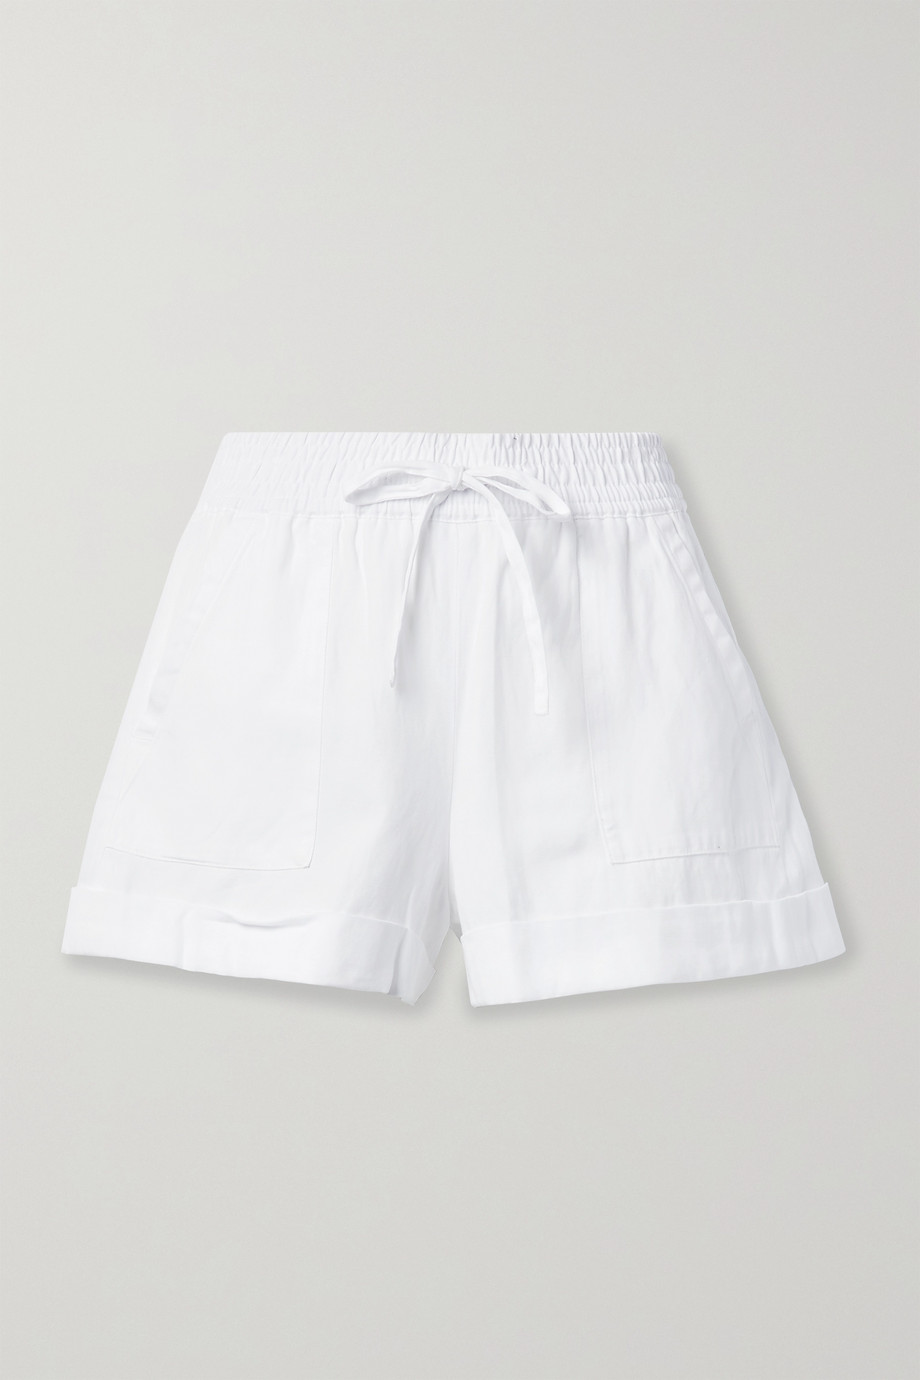 Alice + Olivia TENCEL Lyocell, linen and cotton-blend shorts